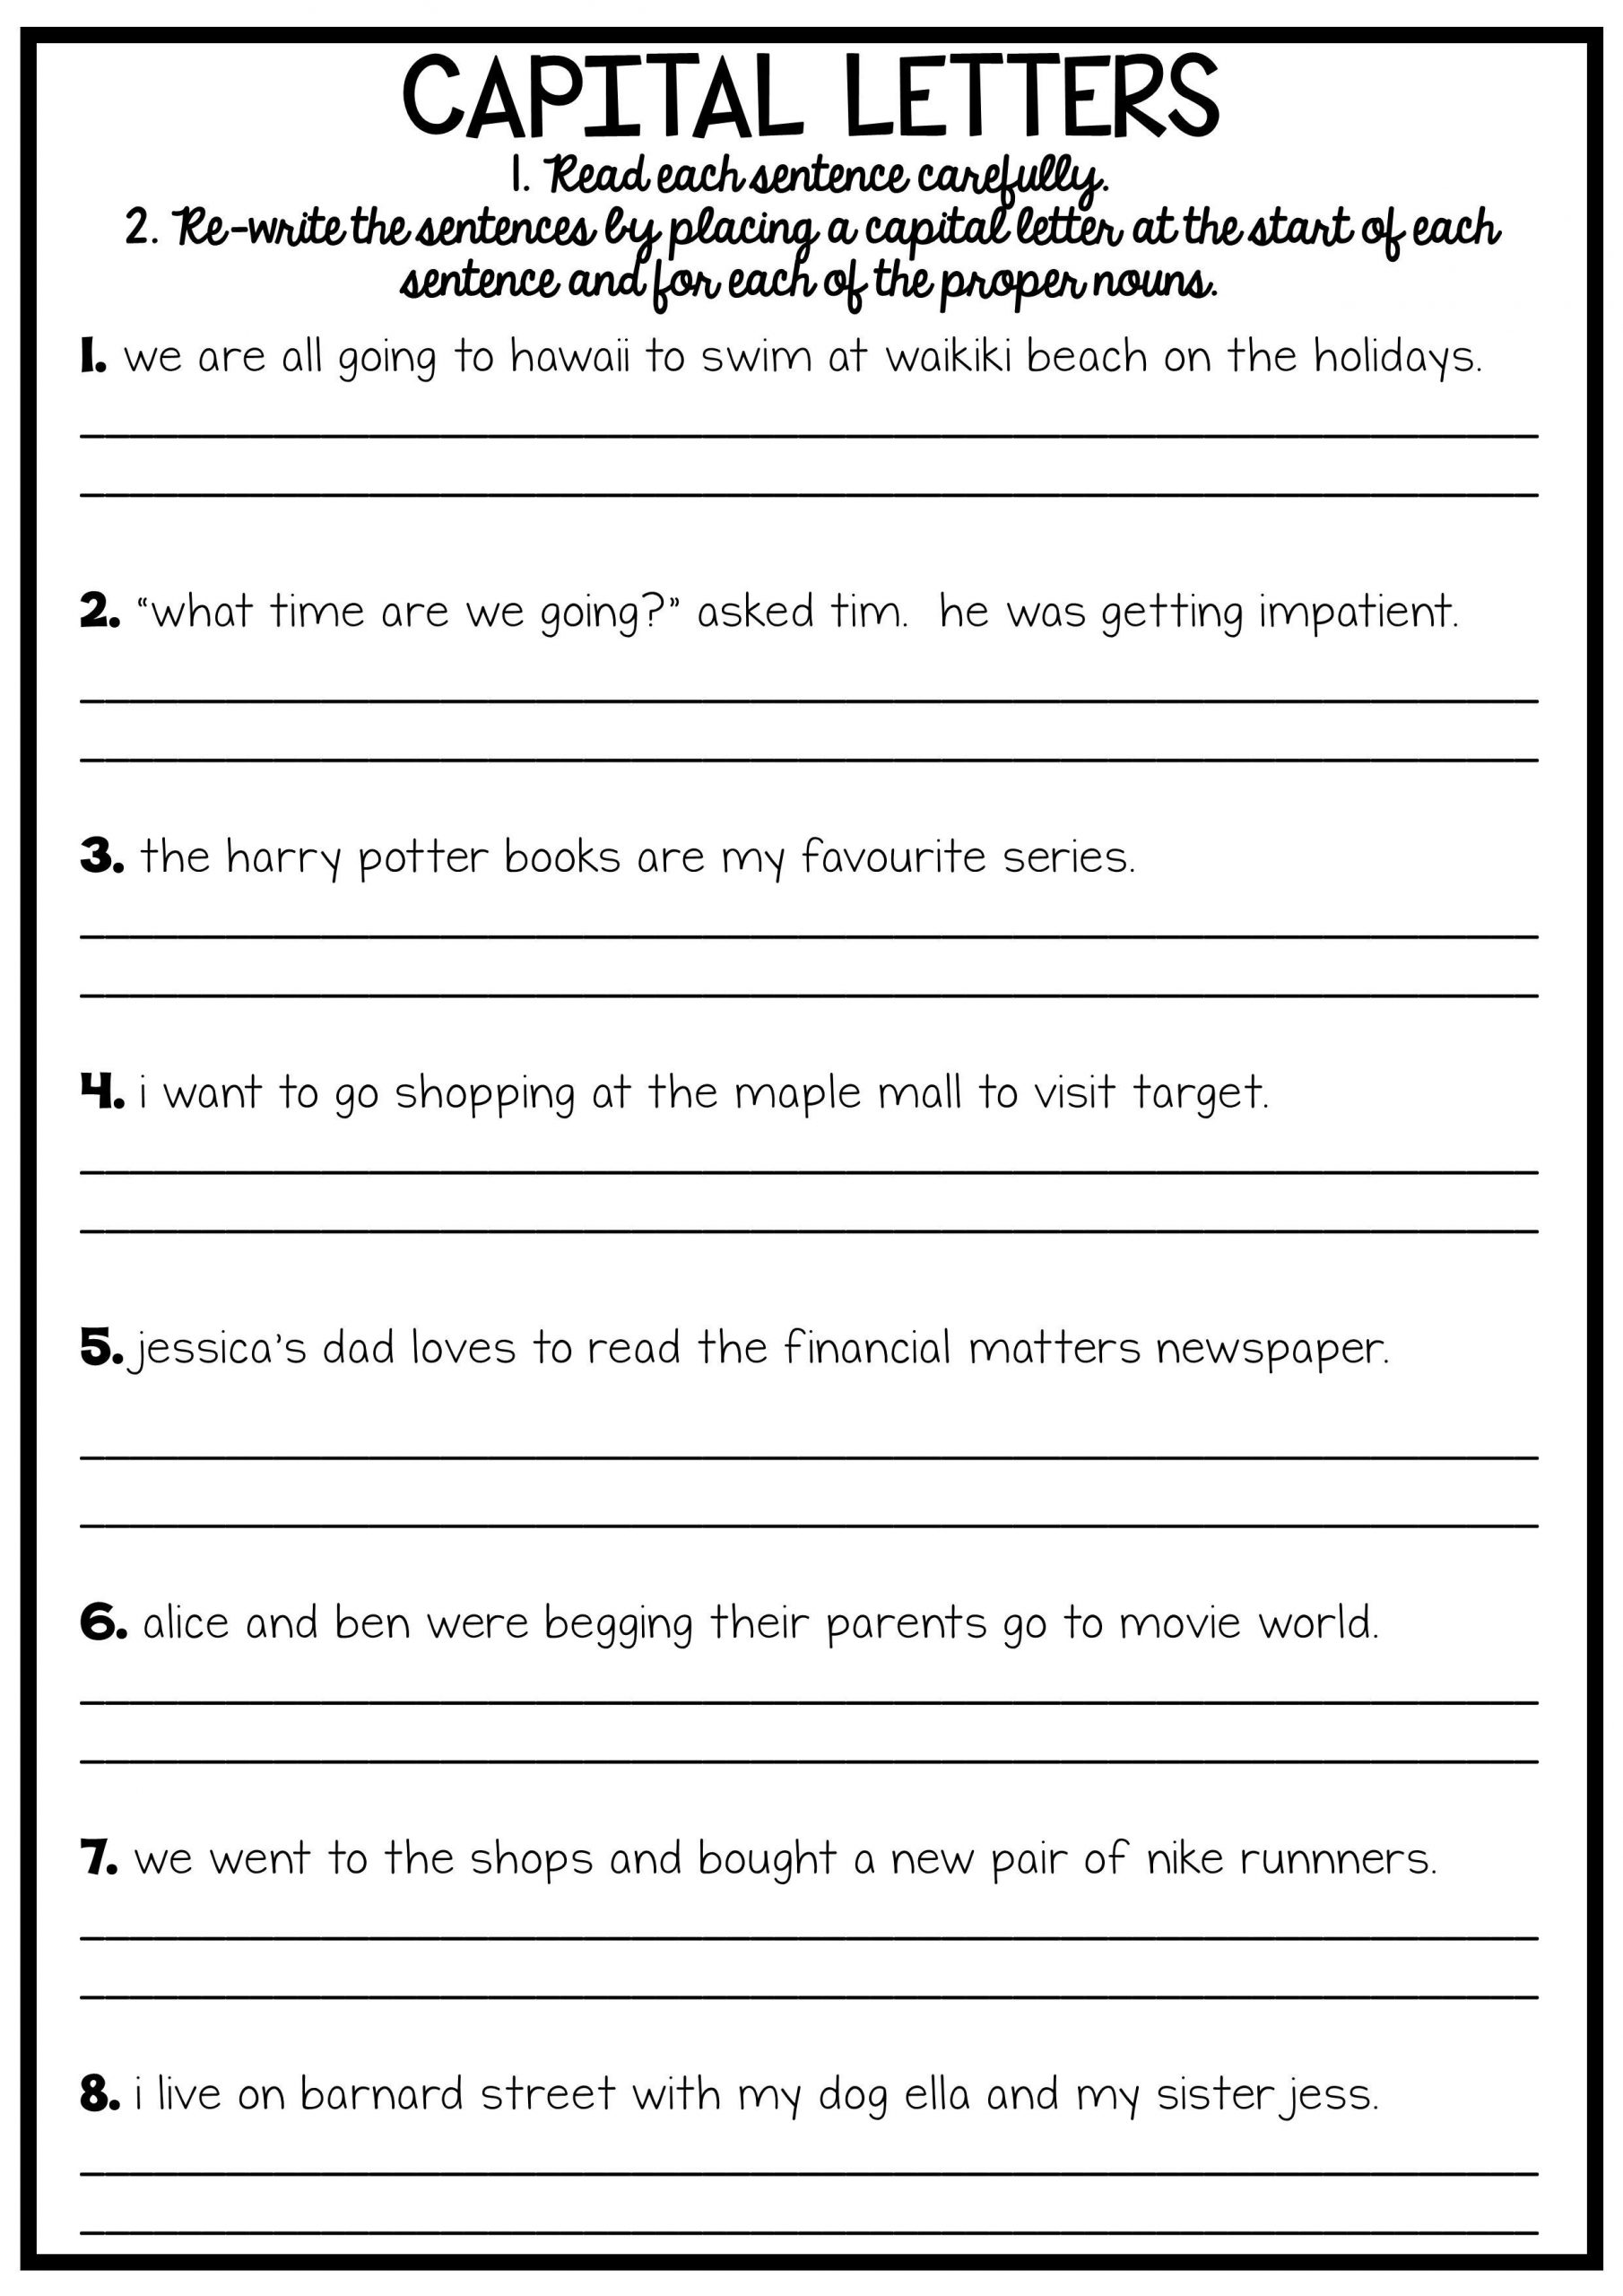 Proper Nouns Worksheet 2nd Grade 5th Grade English Worksheets Nouns